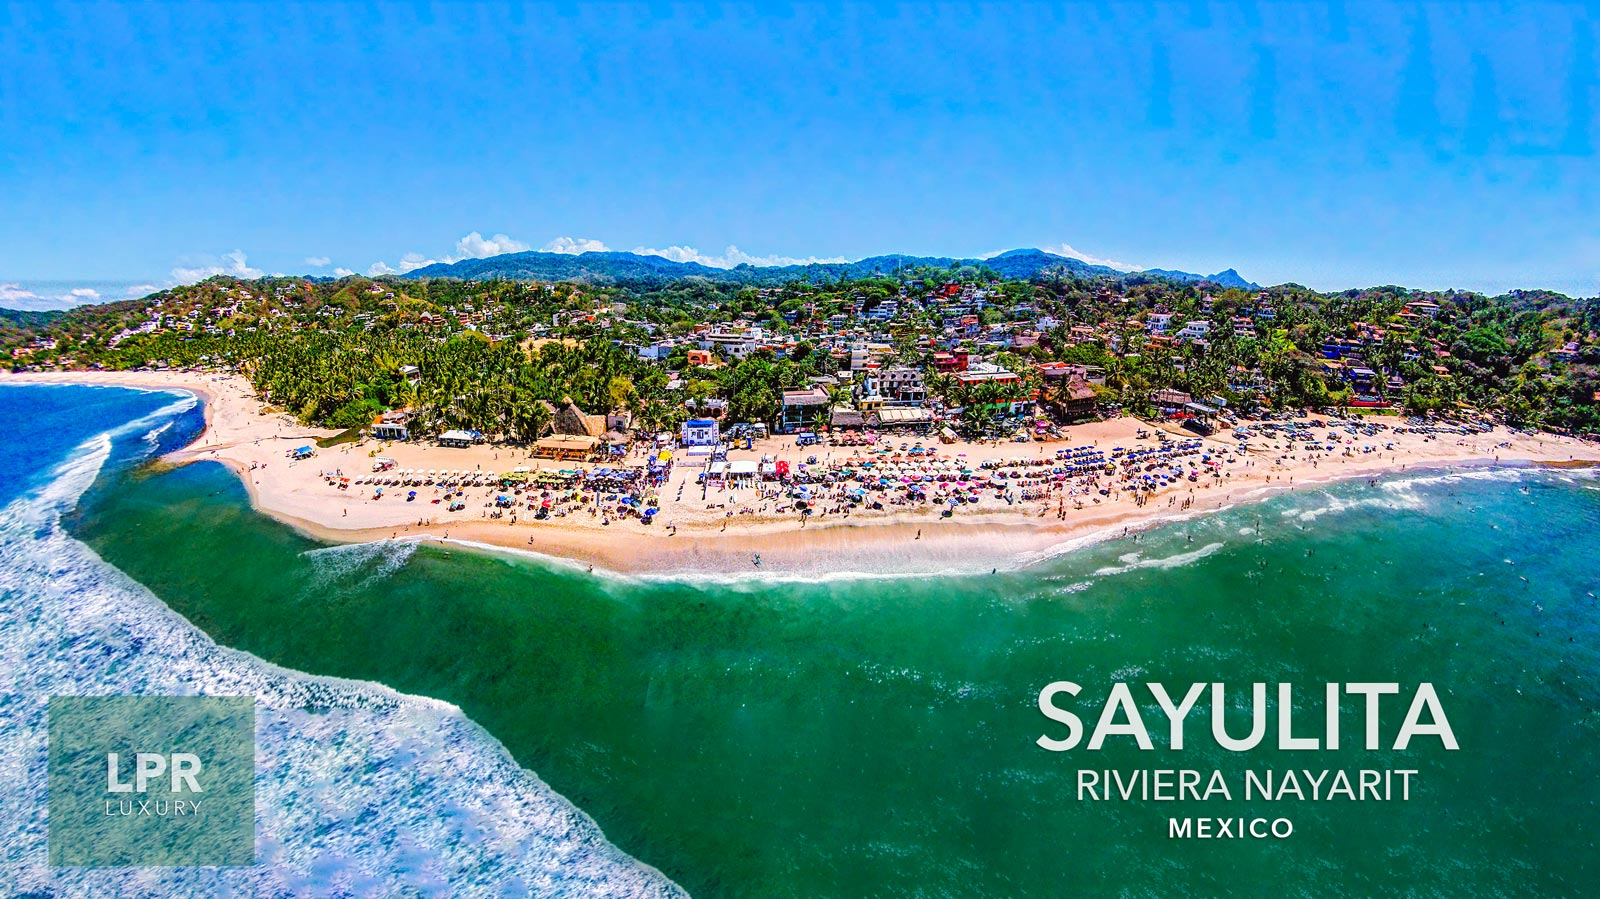 Explore Sayulita, Riviera Nayarit, Mexico - North Shore Puerto Vallarta luxury real estate and vacation rentals